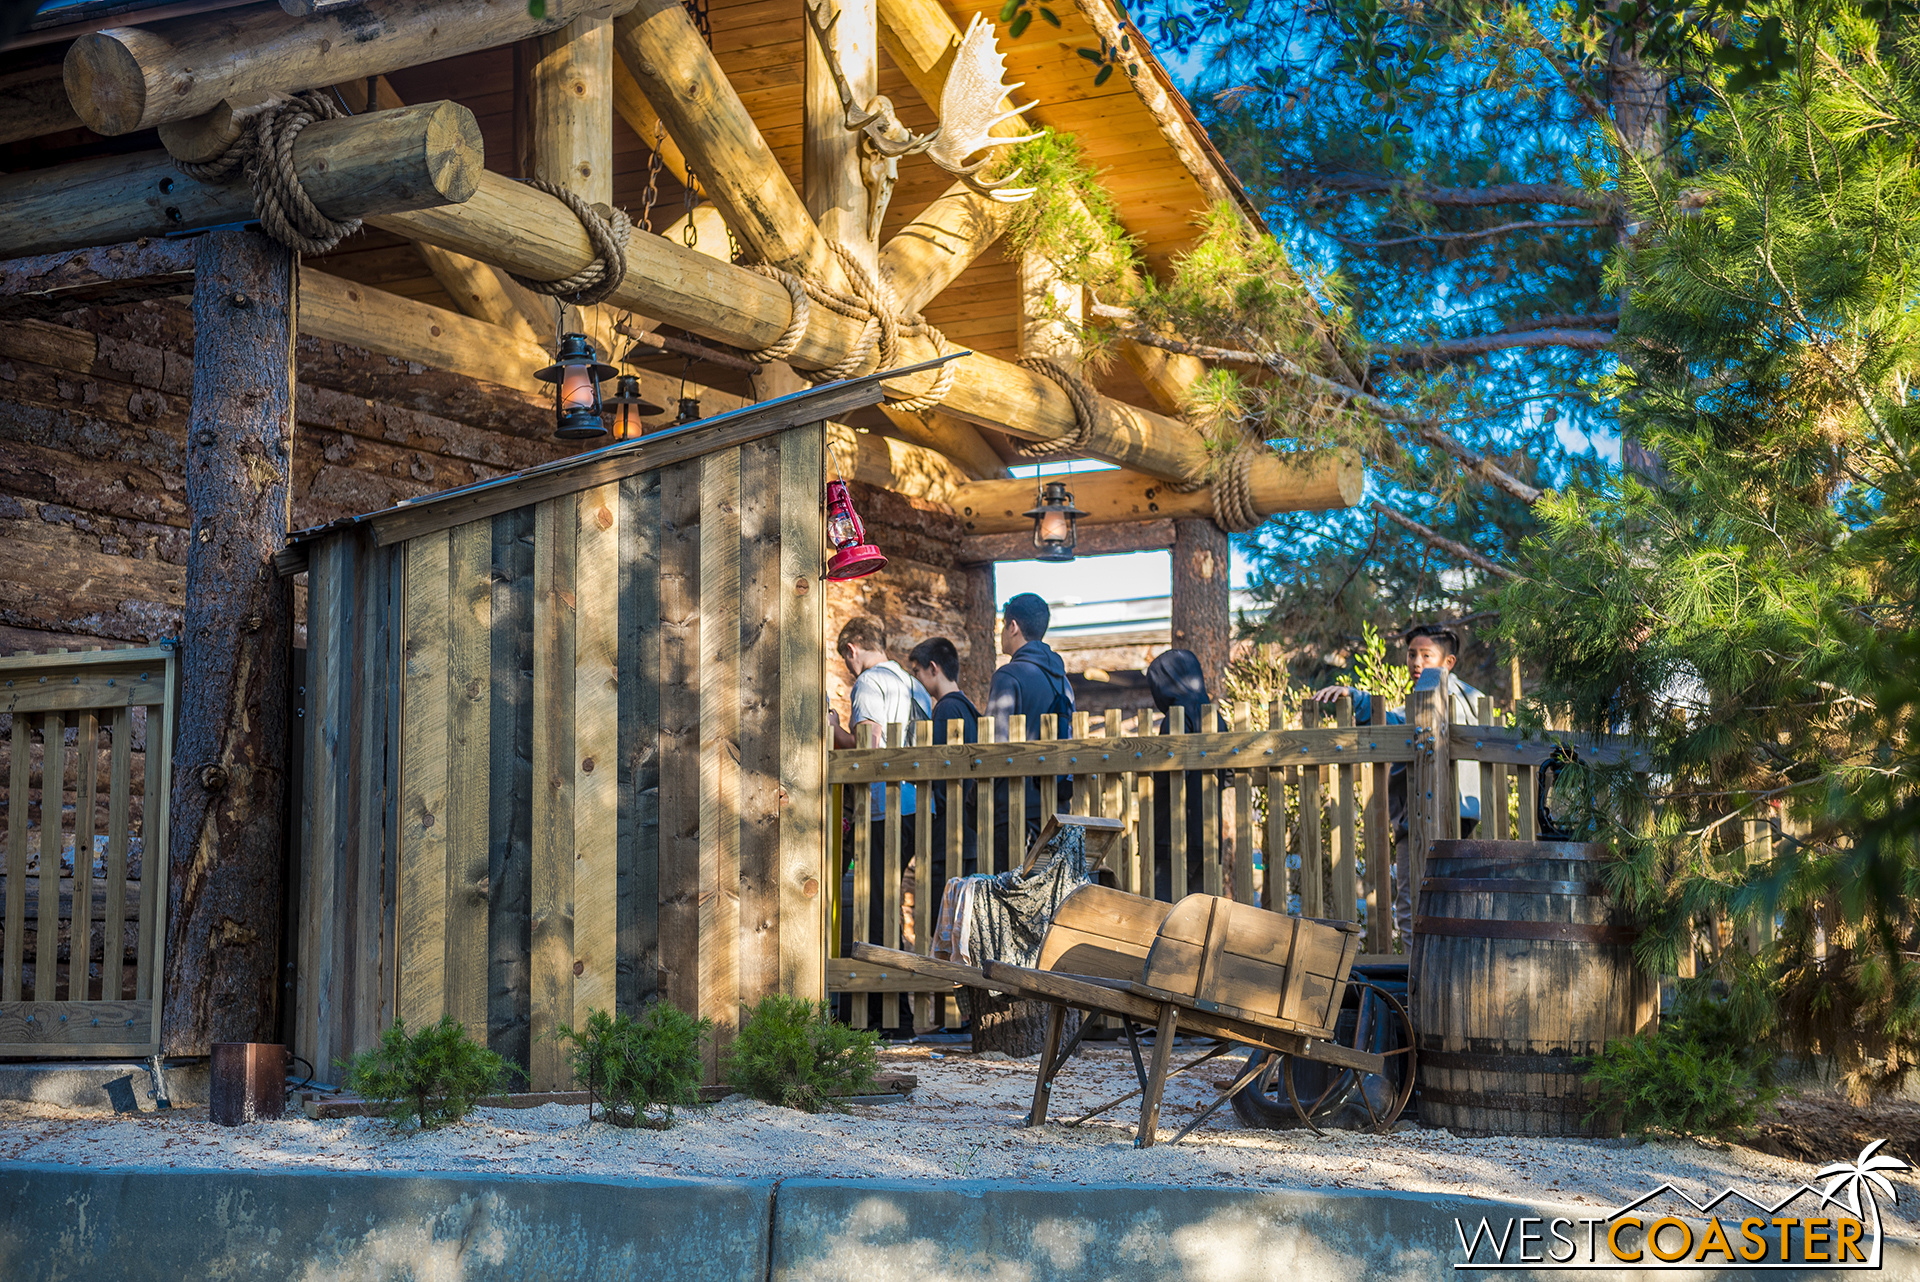 Guests pass by signs of the outpost, like a cart and an outhouse.